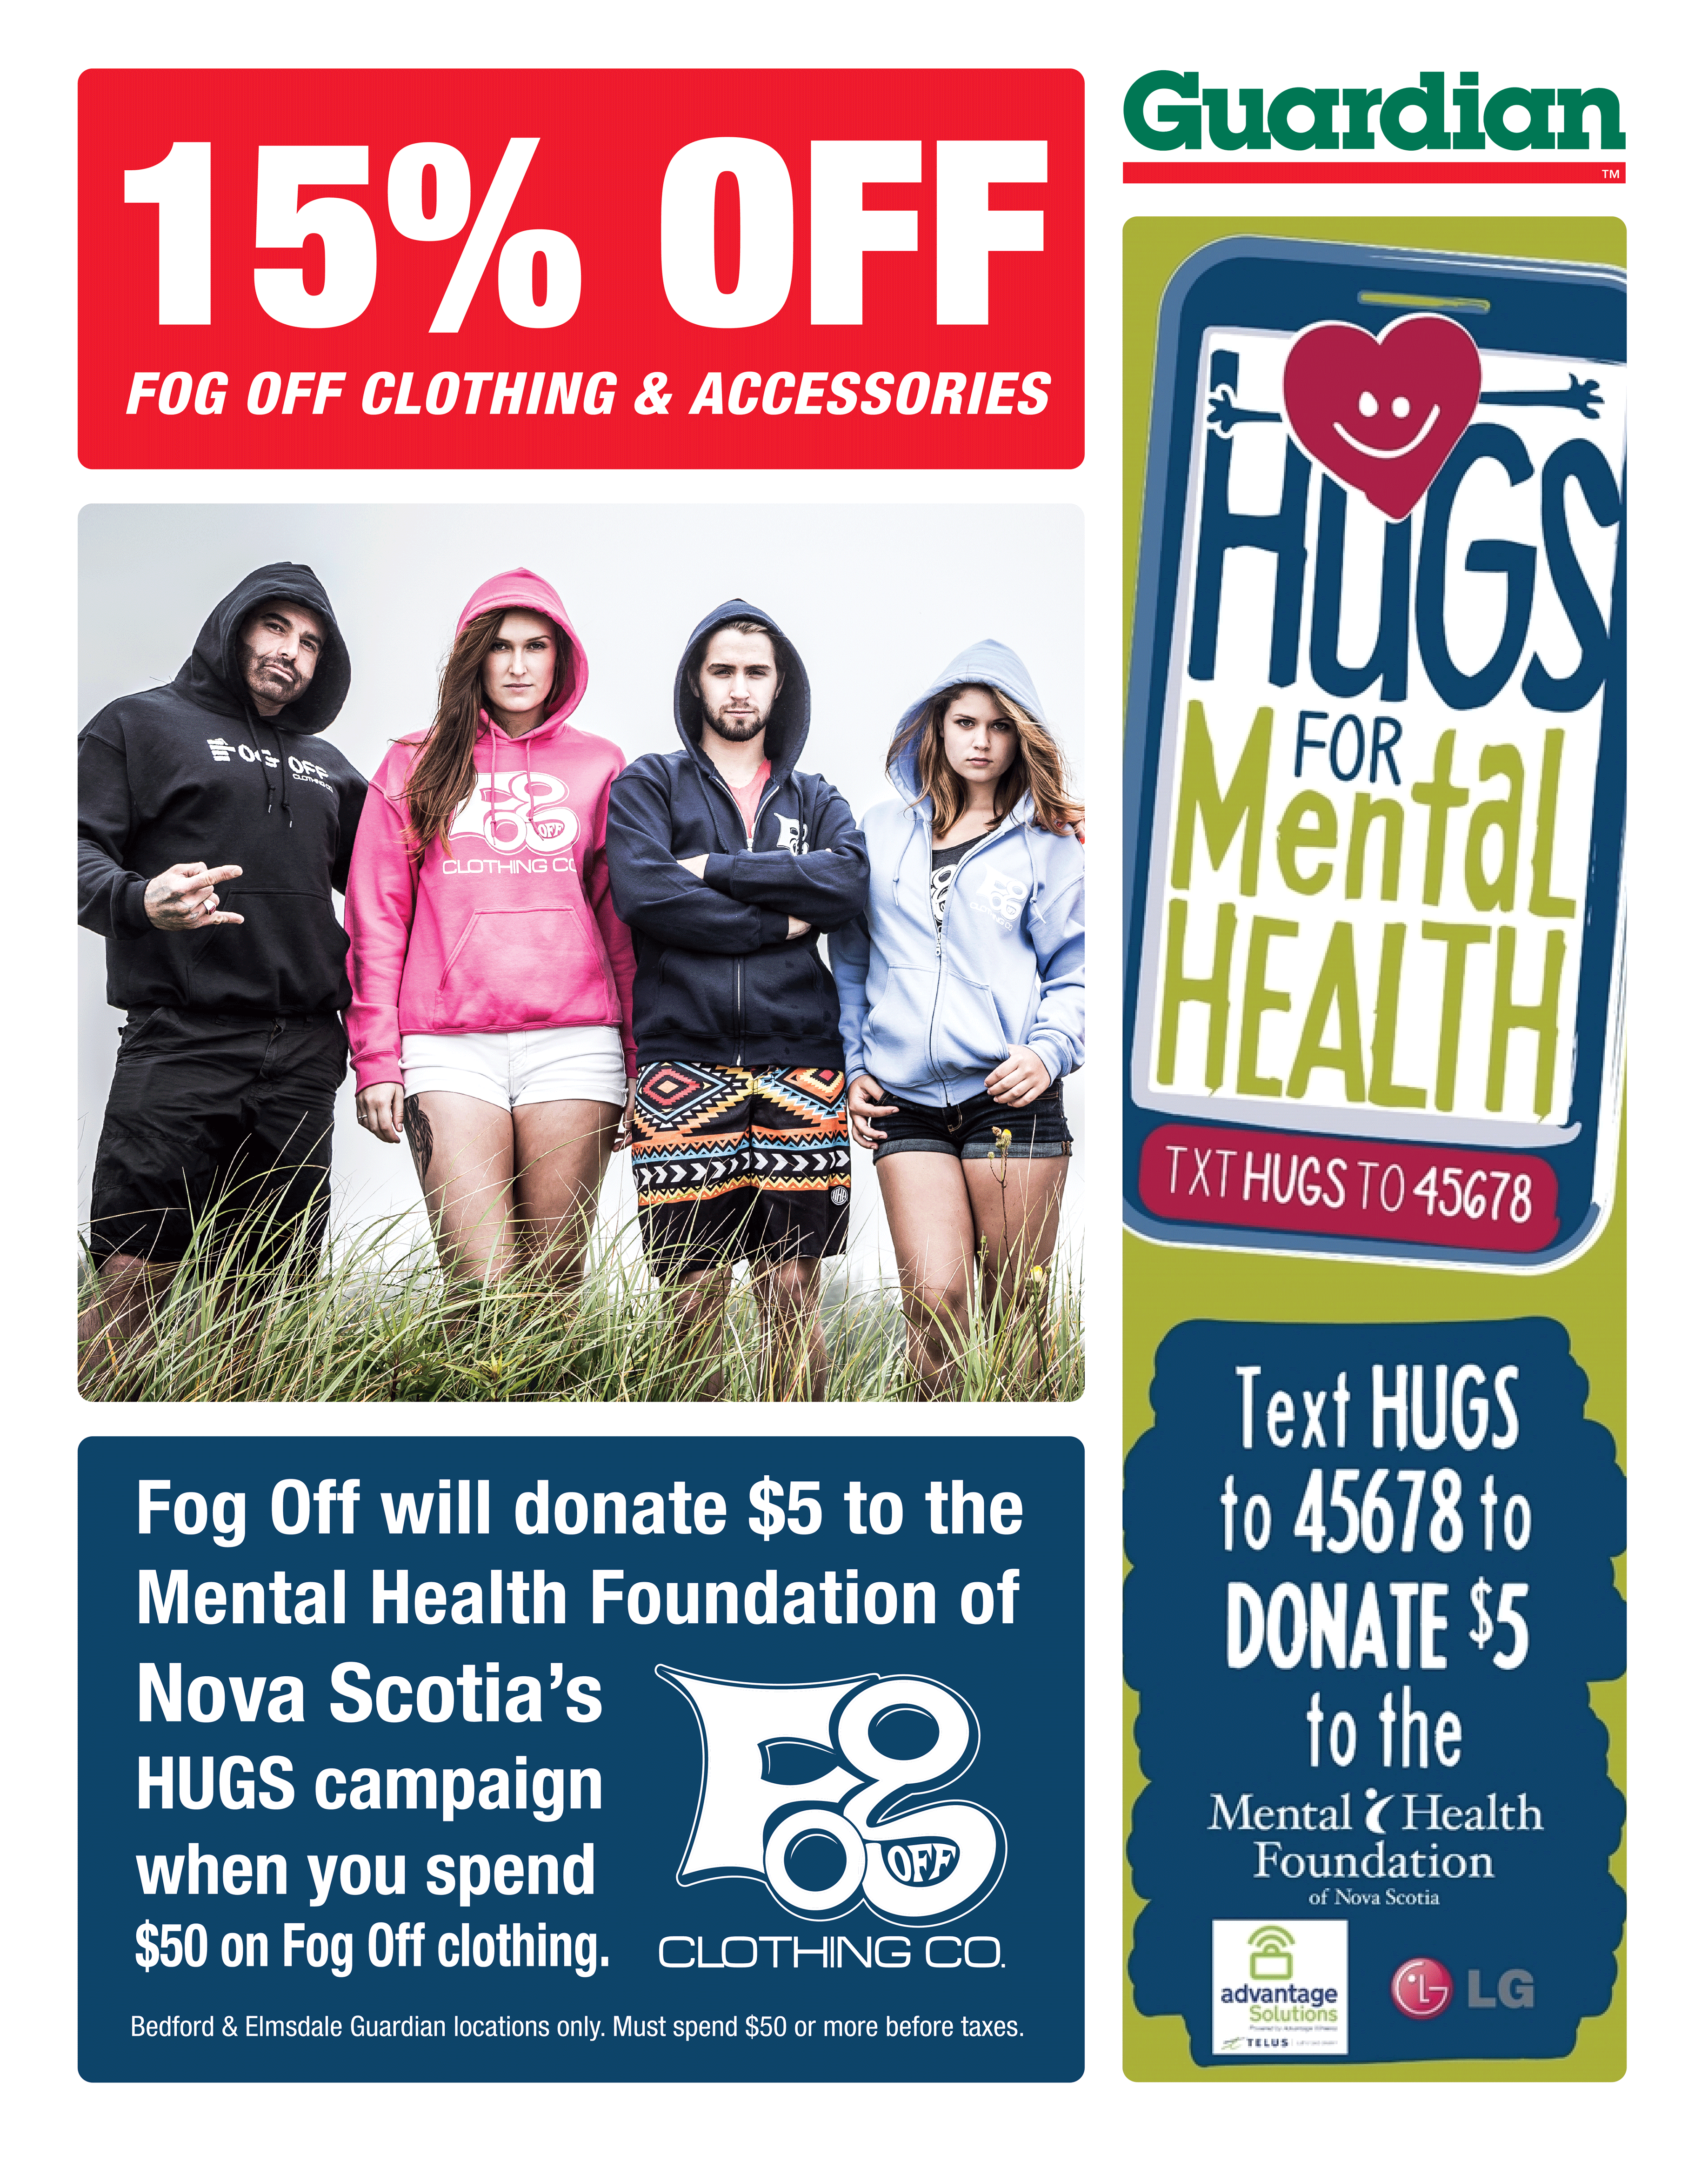 Hugs for Mental Health